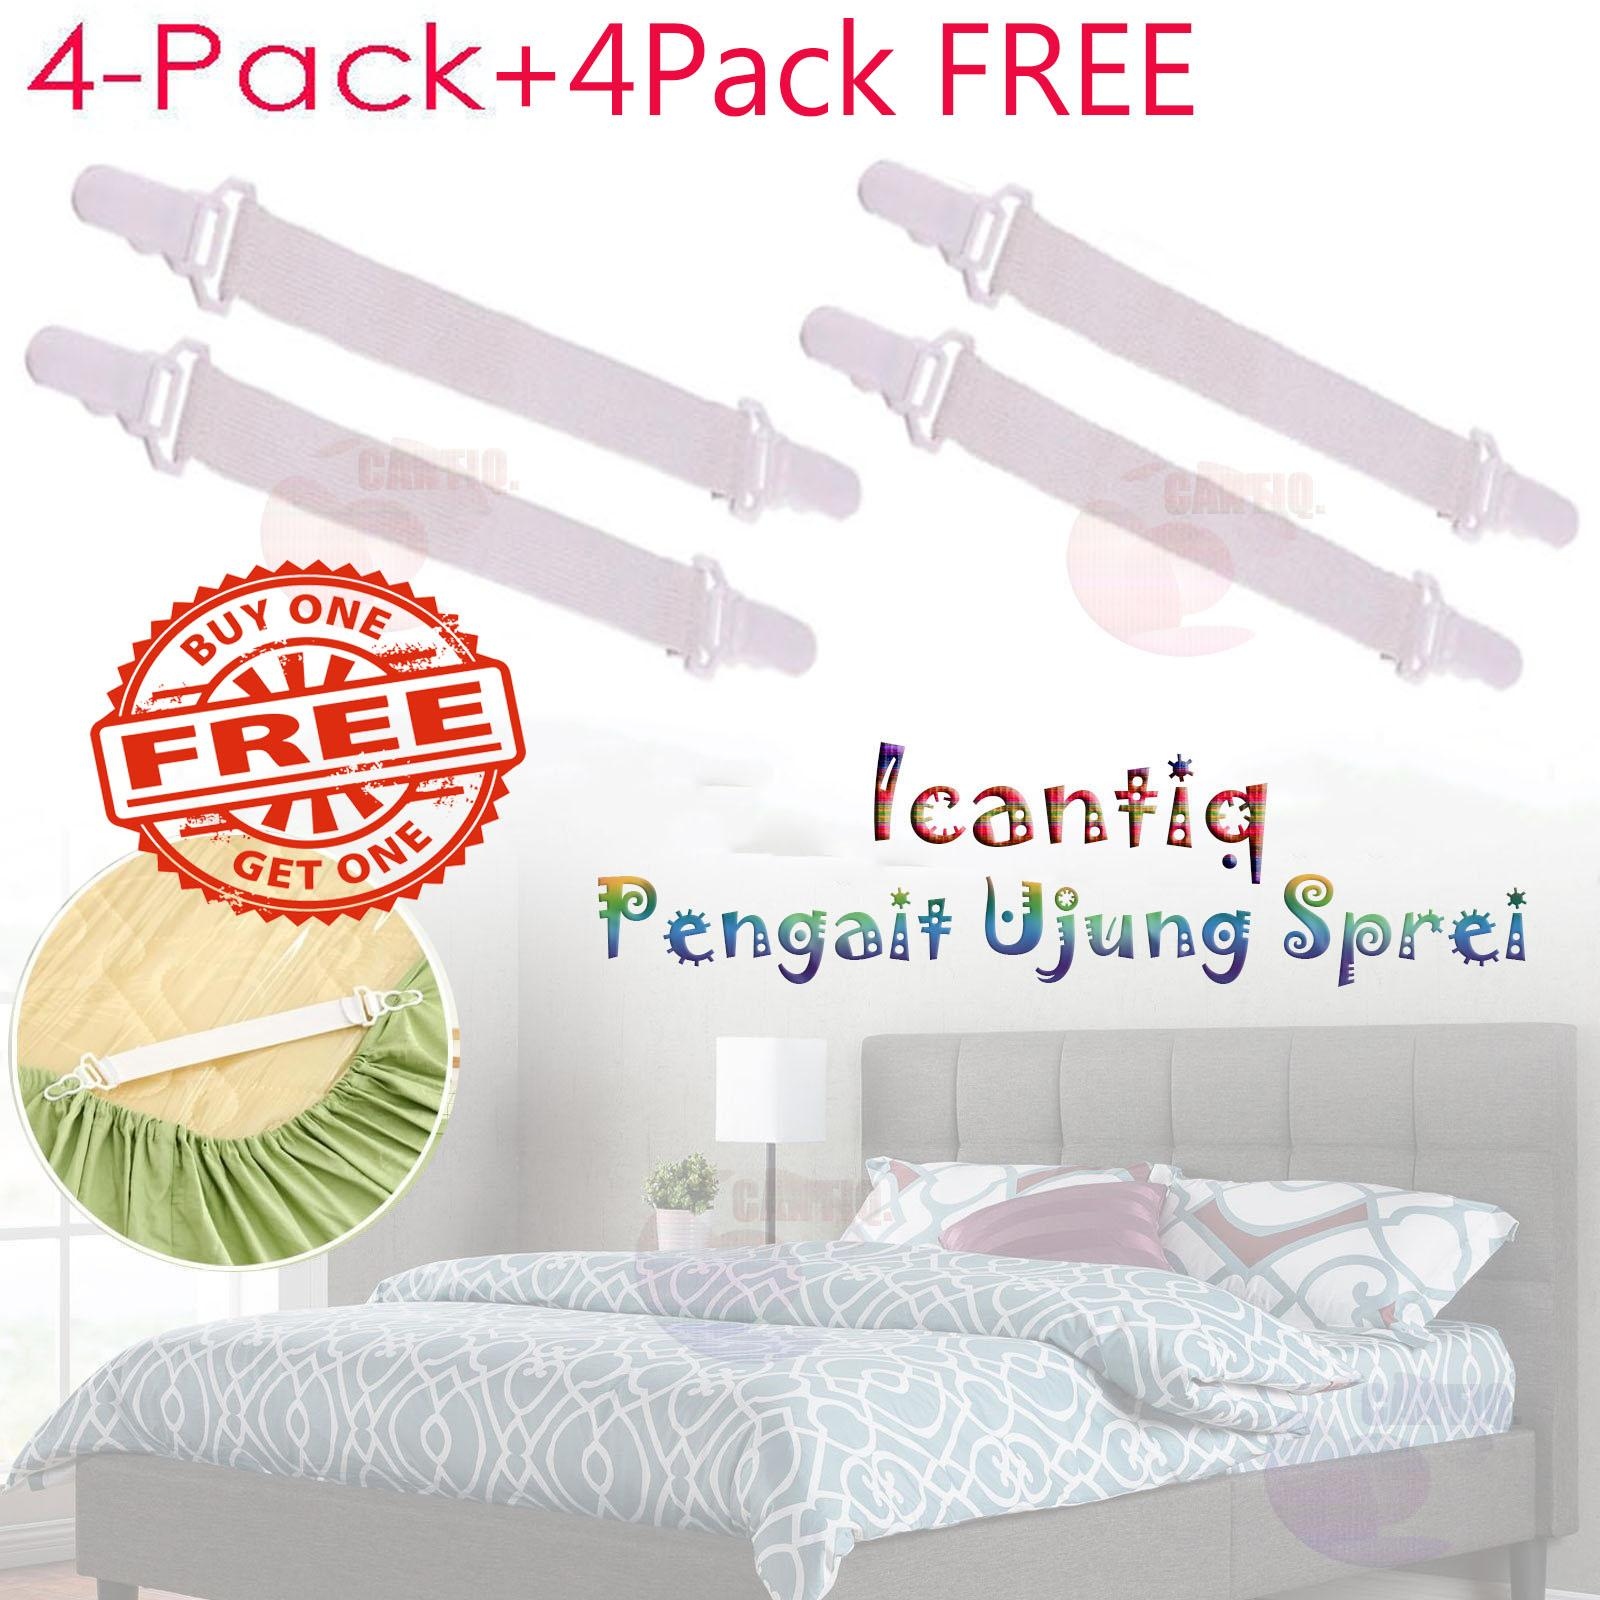 Icantiq Penjepit Sprei [BY1 GET1 FREE] Pengait Ujung Sprei / Jepitan Ujung Sprei / Karet Penjepit Ujung Sprei Elastic Cover Blankets Grippers Holder Bed Sheet Clip Mattress Fasteners Fixing Slip-Resistant Belt Clip Home Living - Putih